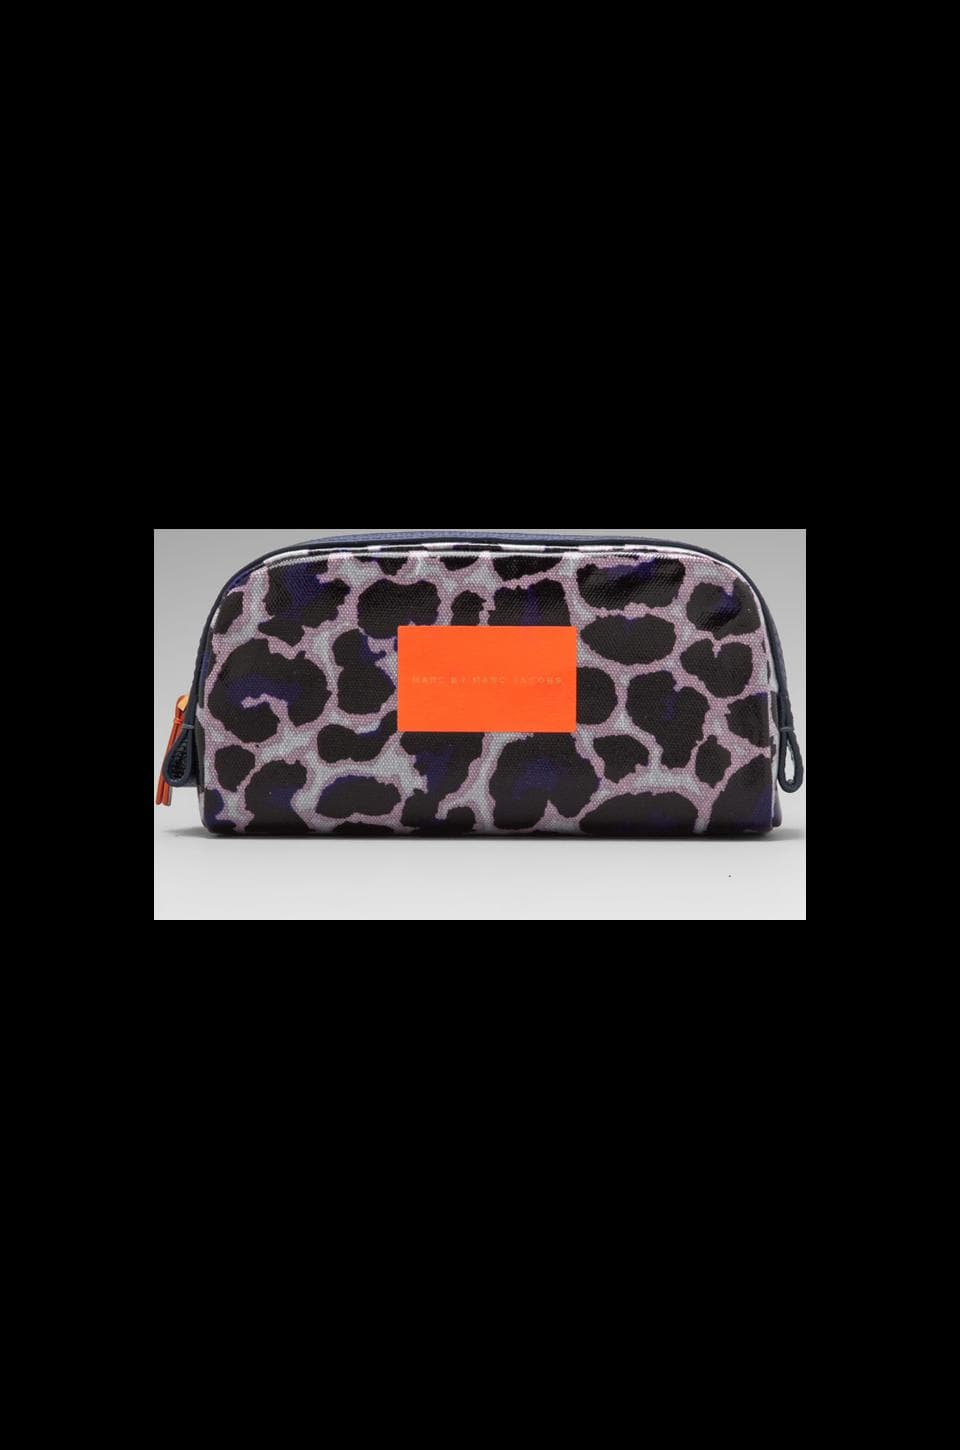 Marc by Marc Jacobs Coated Canvas Landscape Cosmetic Pouch in Royal Purple Multi